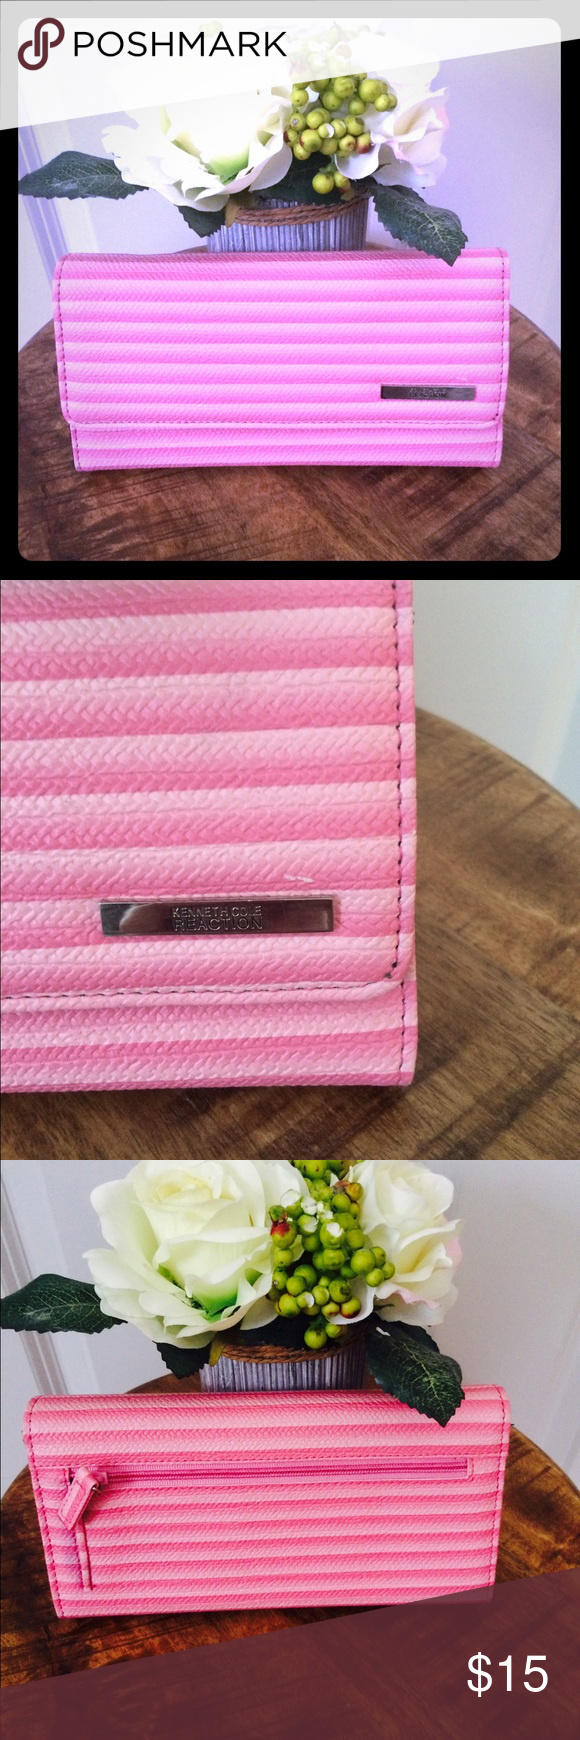 Kenneth Cole Reaction Pink Wallet Kenneth Cole Reaction Pink Stripped Wallet with black interior! Never used before! Just has one little mark on wallet which is shown in picture along with one tiny scrap on silver logo!  In good condition! Inside of wallet has multiple slots and pockets and chain pocket in back of wallet! Message me with any questions! ❤️ Kenneth Cole Reaction Bags Wallets